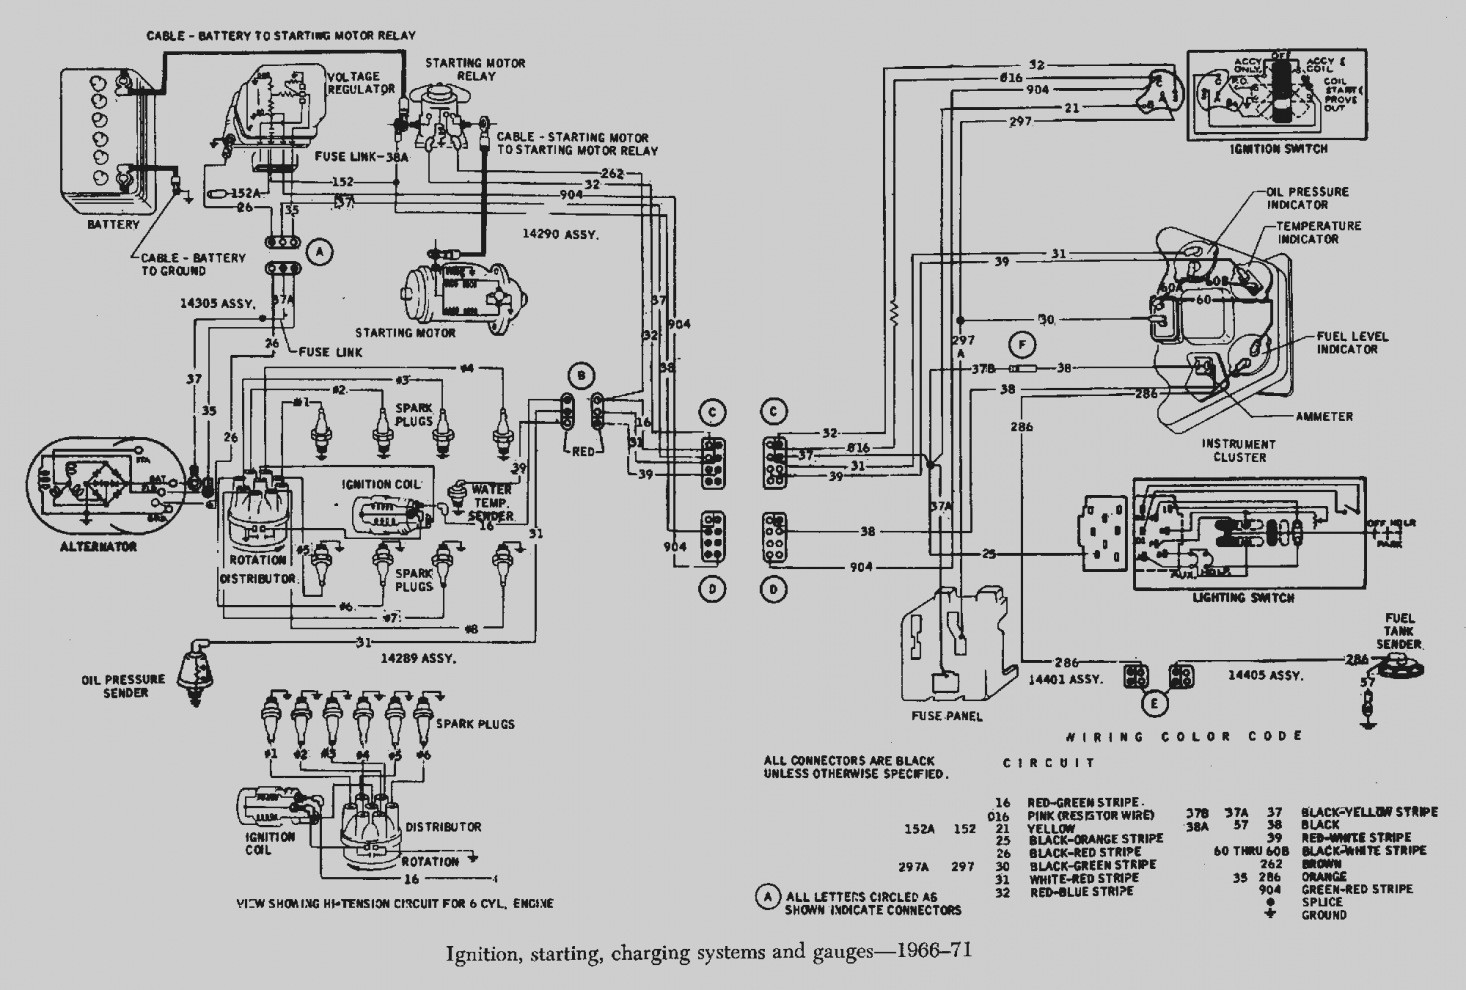 Elegant Chevy 350 Plug Wire Diagram Wiring Diagram For Gm 350 Free Download Wiring  Diagrams